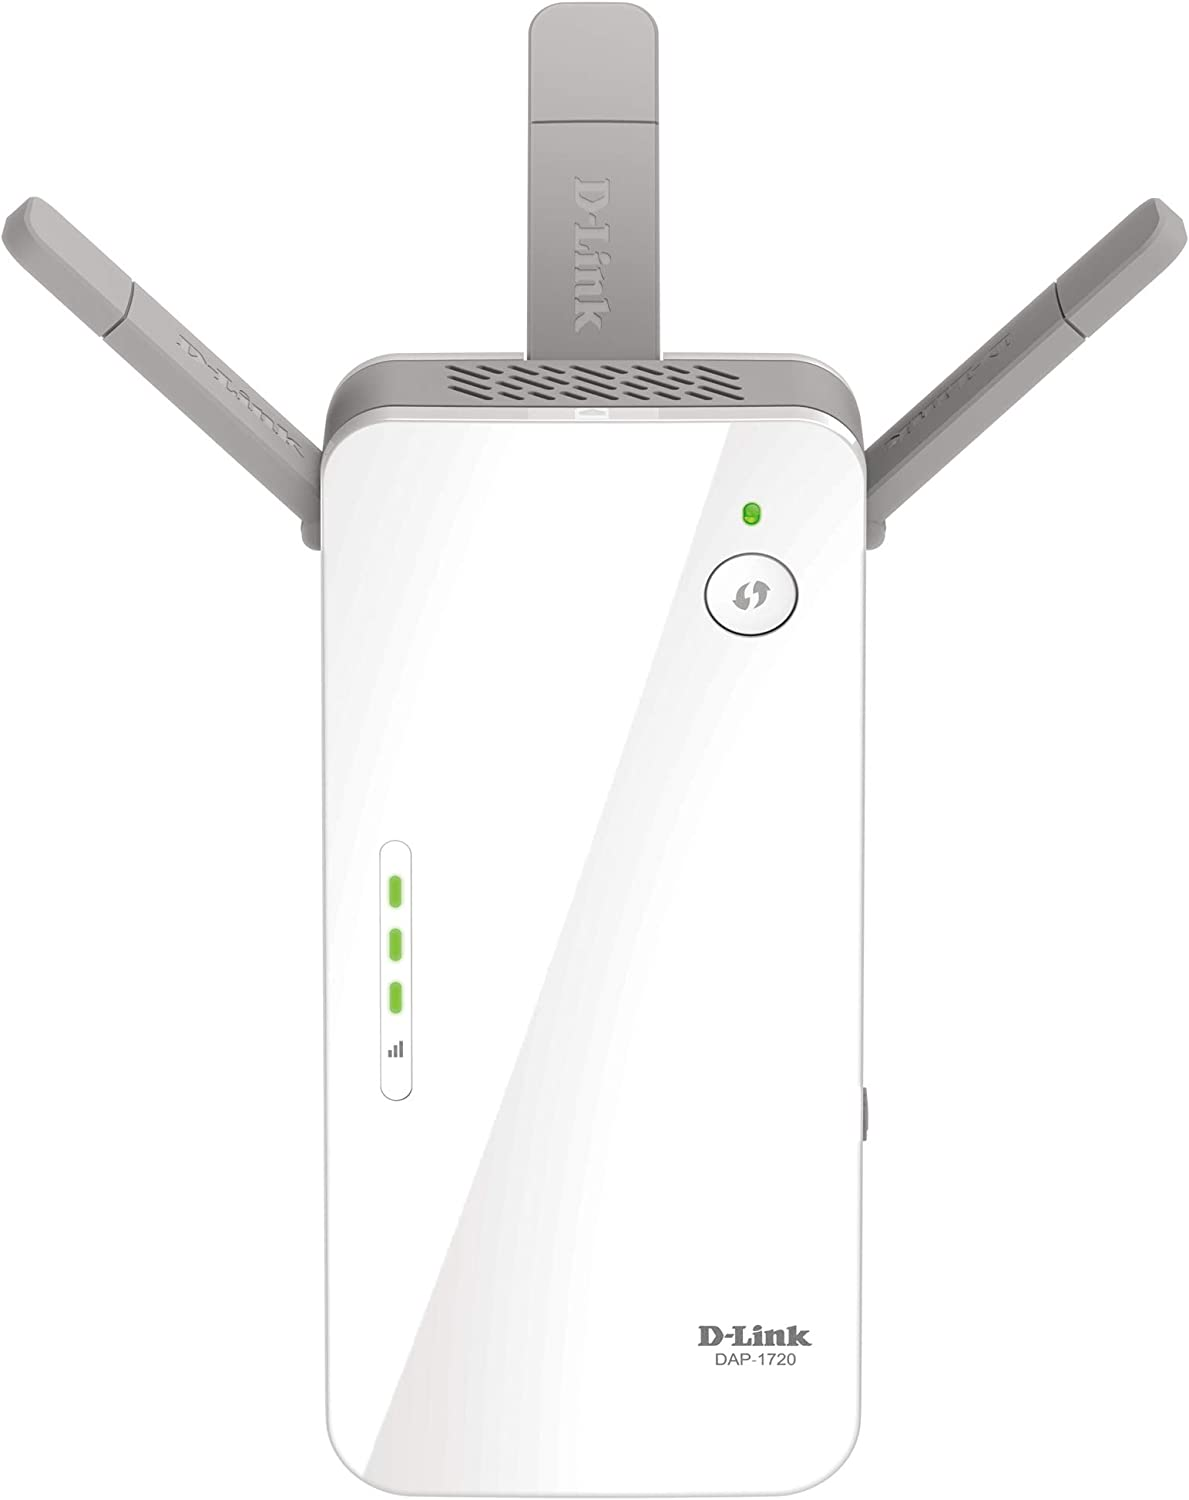 D-Link WiFi Range Extender, AC1750 Plug In Wall Booster, Dual Band Gigabit Wireless Repeater and Smart Signal Indicator (DAP-1720),White